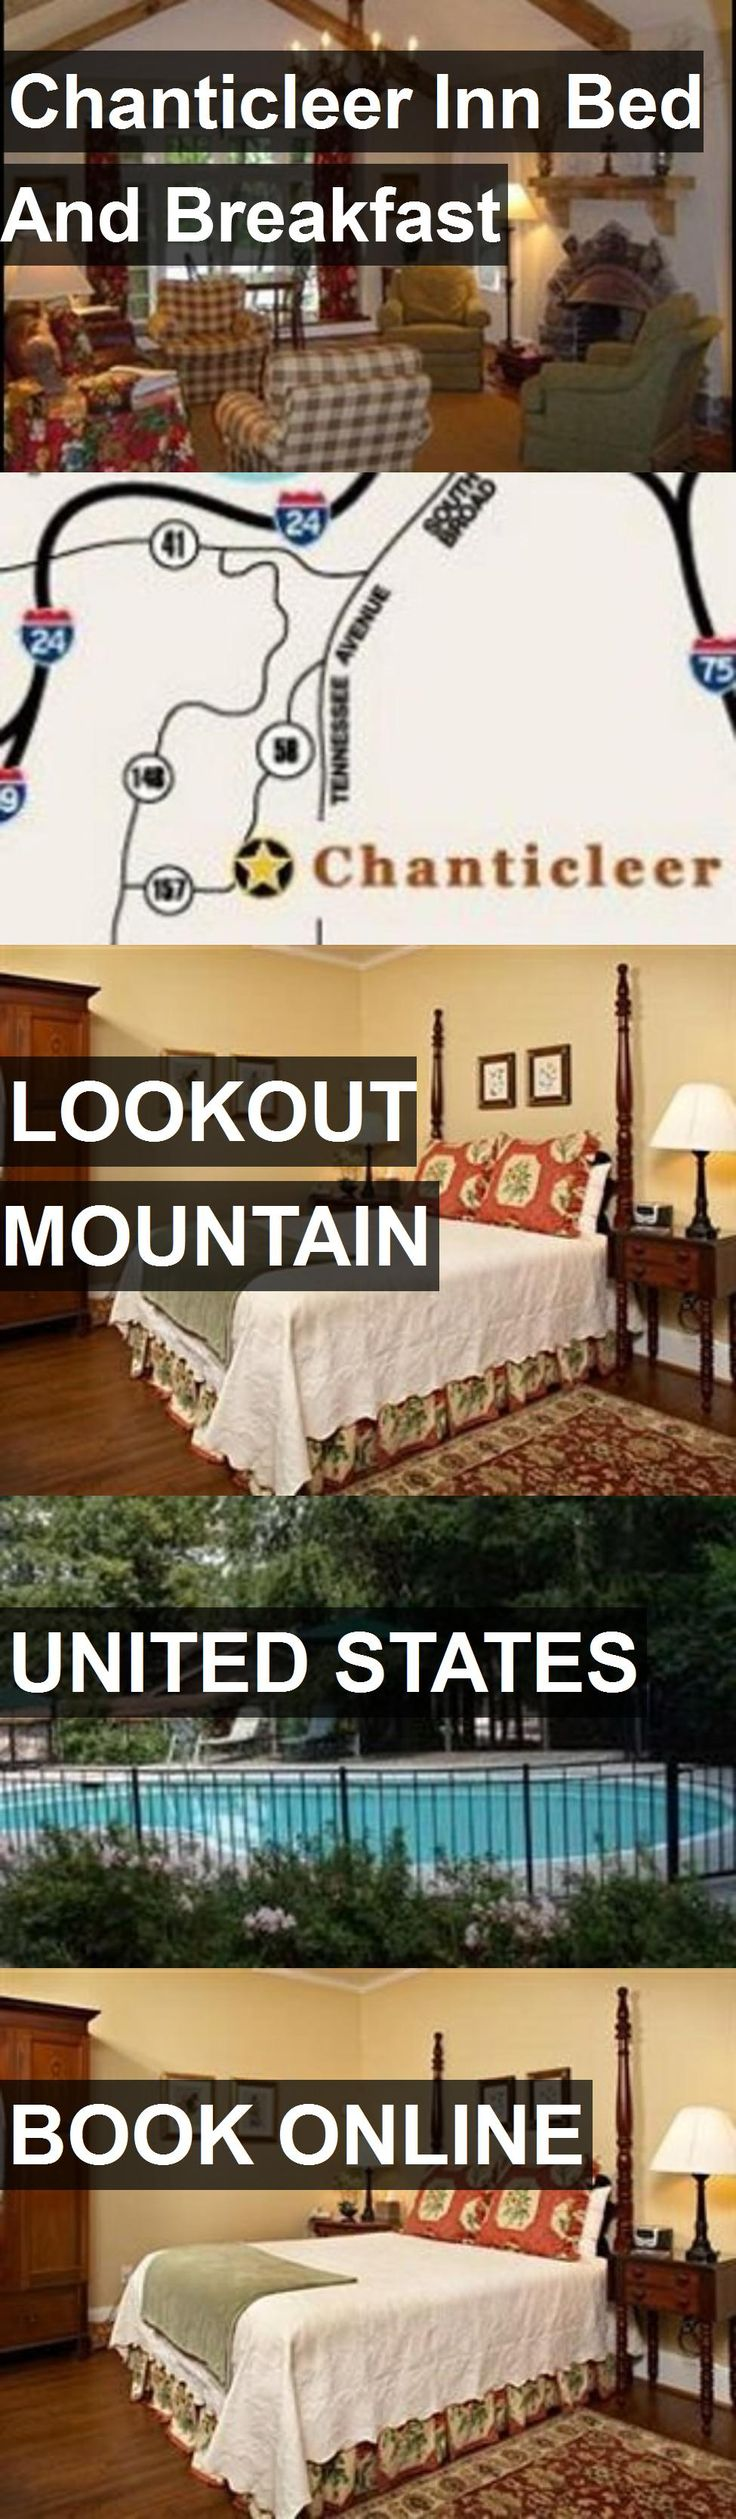 Hotel Chanticleer Inn Bed And Breakfast in Lookout